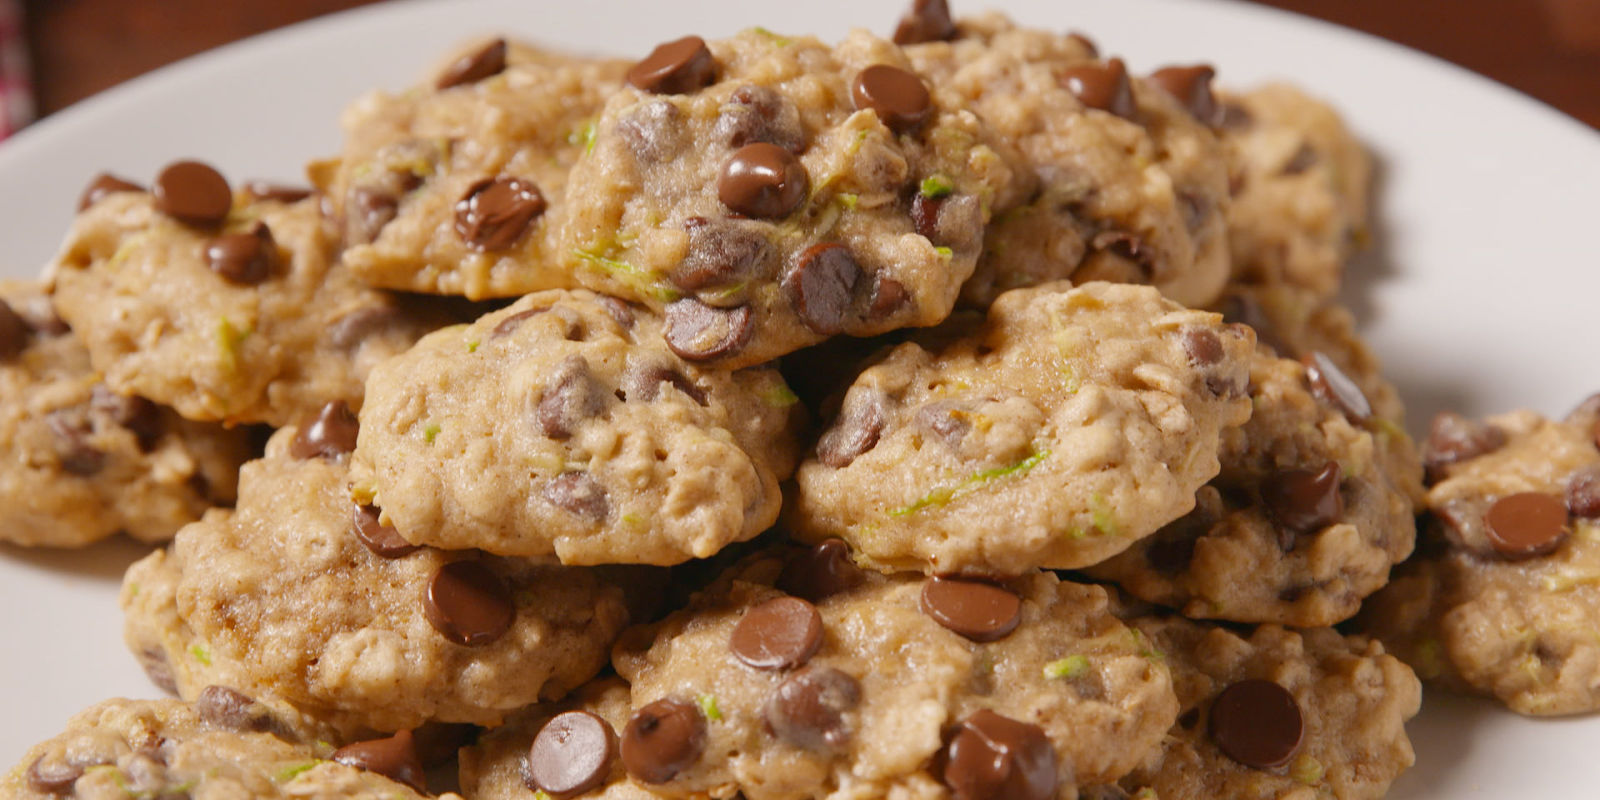 Recipes For Low Calorie Cookies